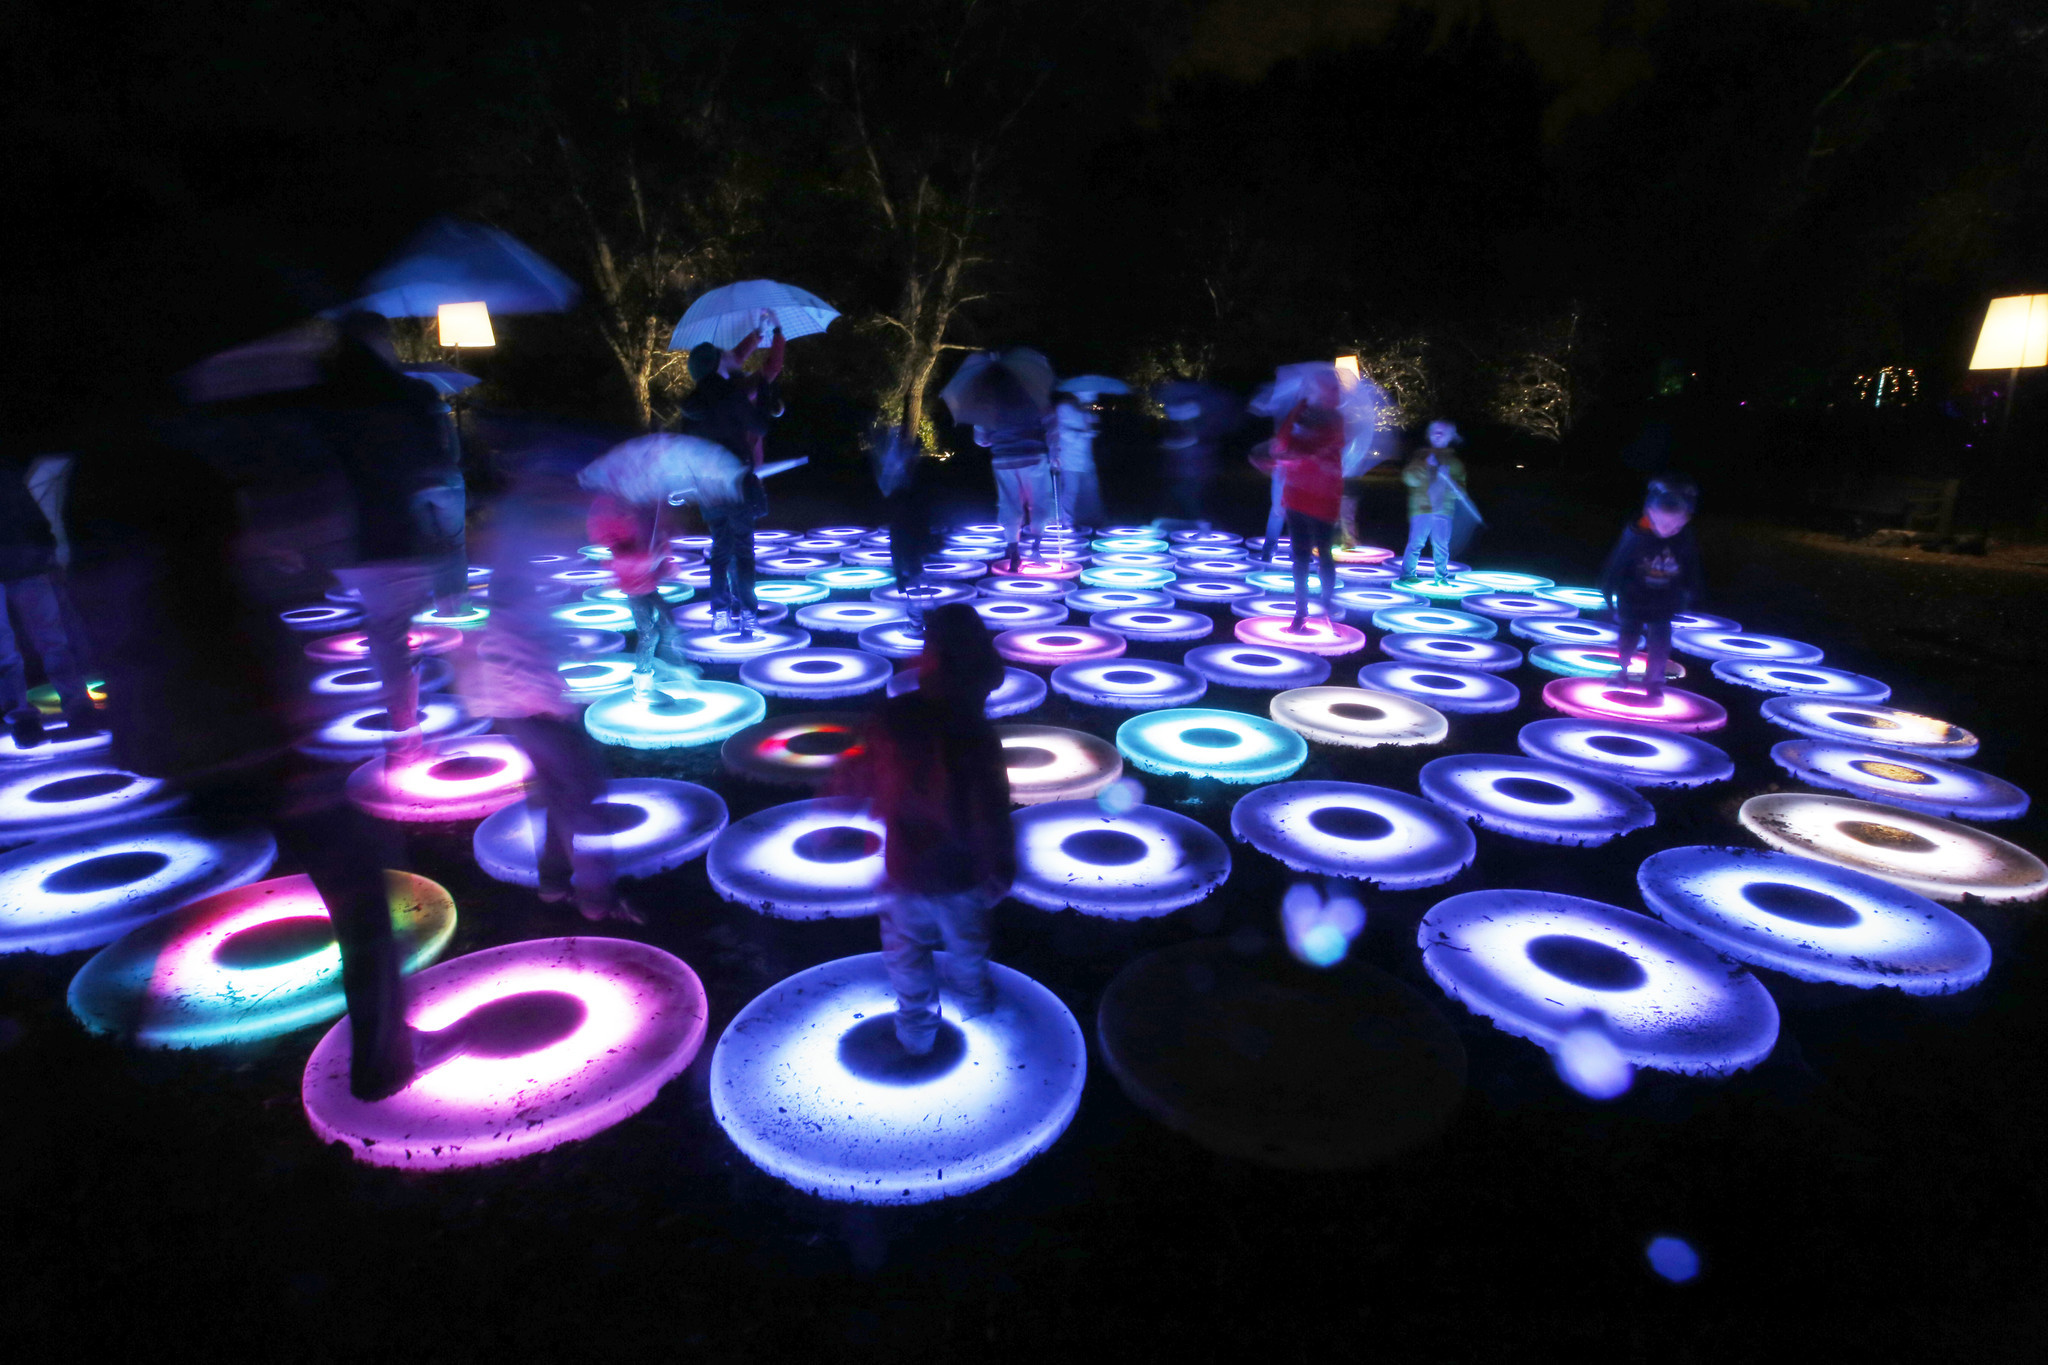 Descanso gardens 39 39 enchanted forest of light 39 la times - Descanso gardens enchanted forest of light ...